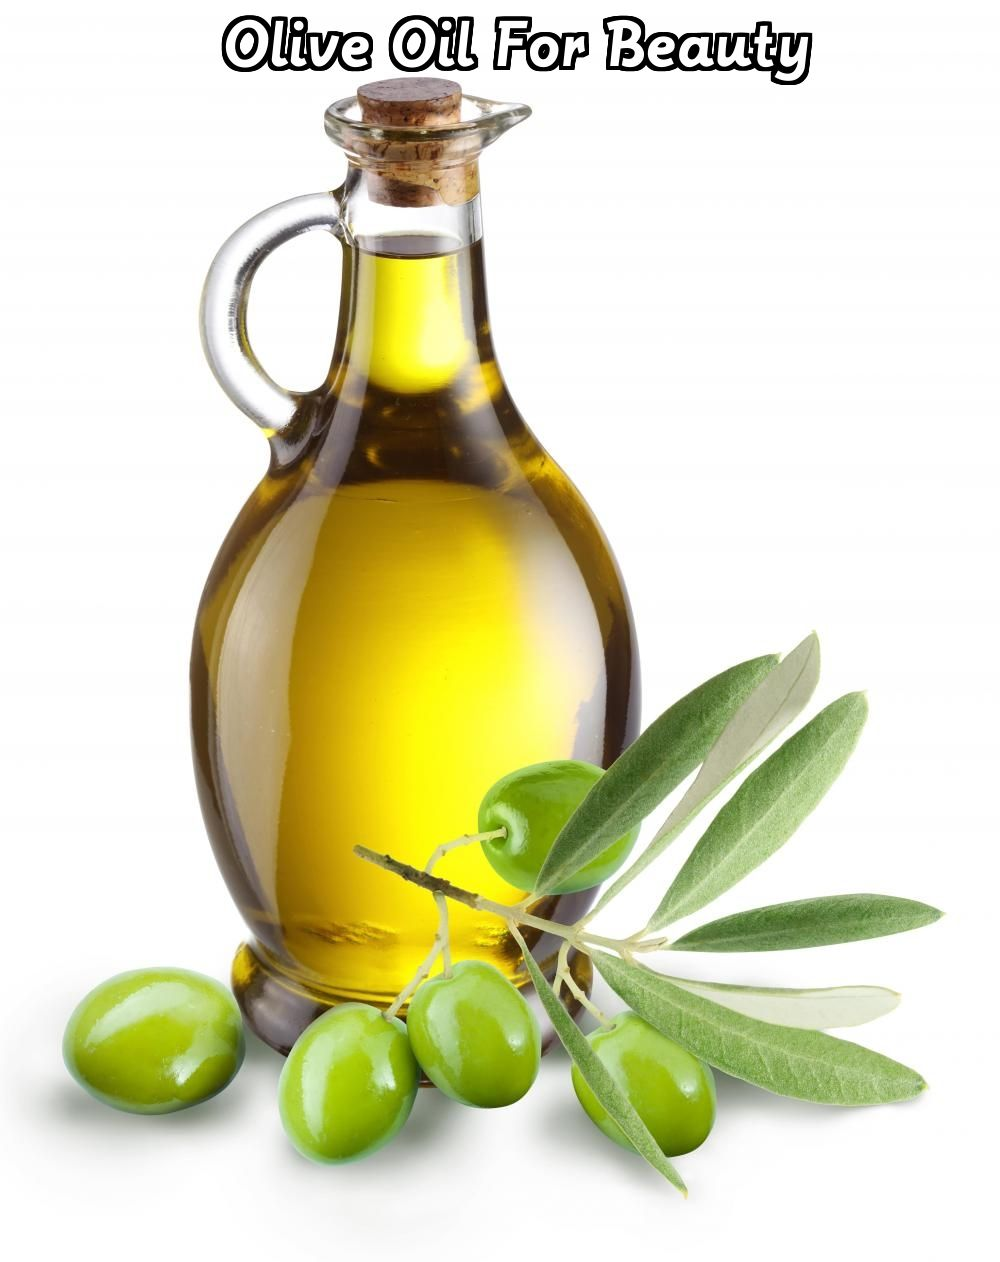 Olive oil can be a staple in your beauty care routine depending on your needs. It can be used to treat dry skin or prevent hang nails. Here are some great beauty uses for olive oil.